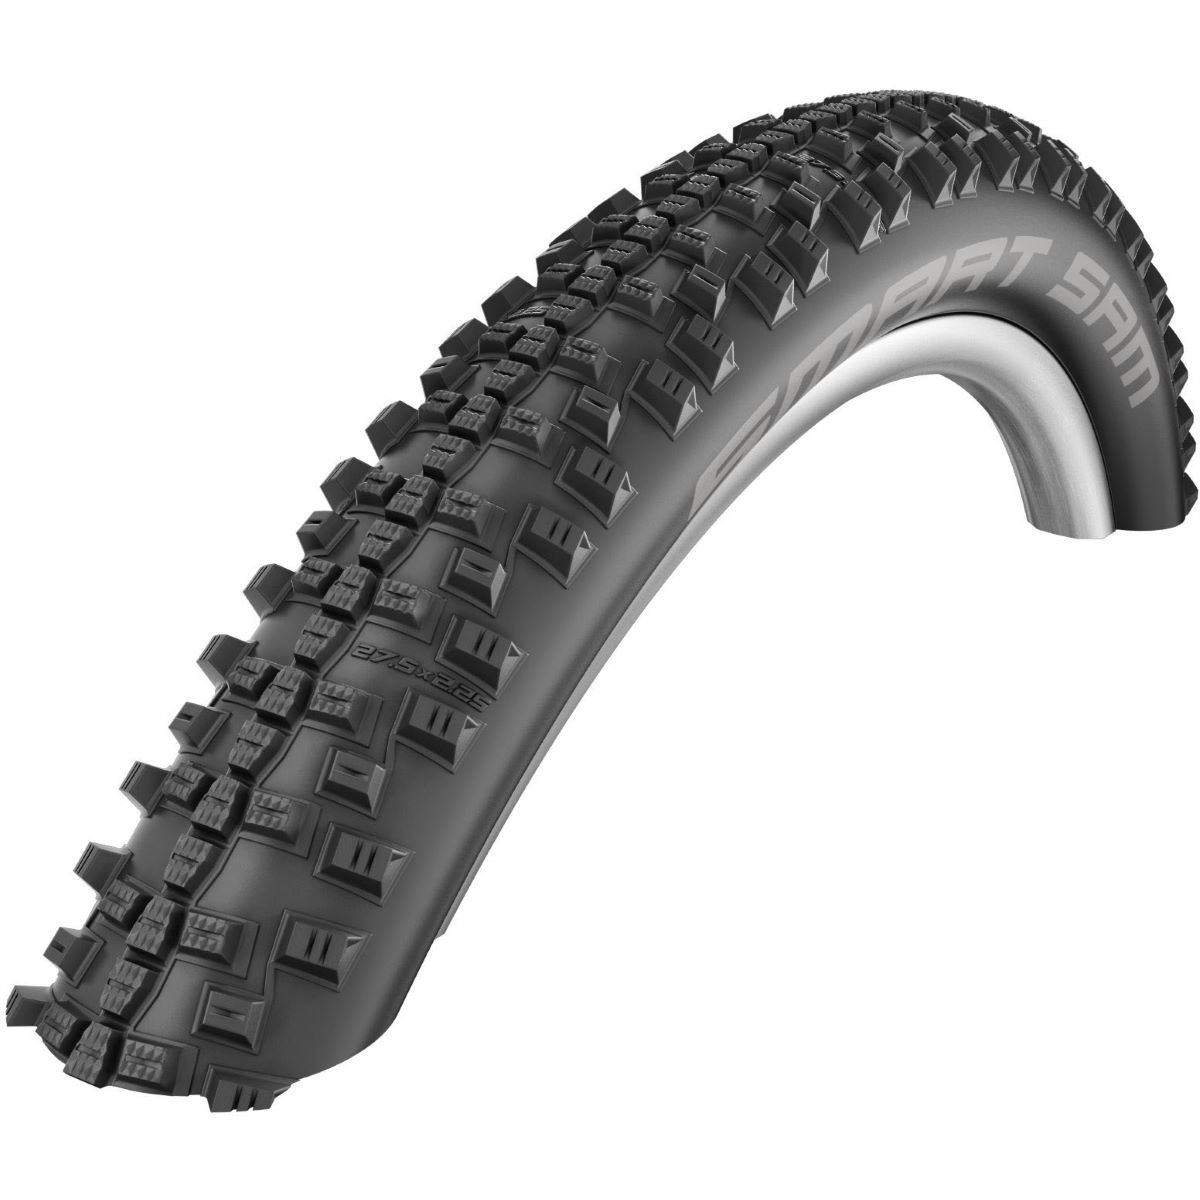 Pneu VTT Schwalbe Smart Sam Plus GreenGuard SnakeSkin - 2.25' 29'